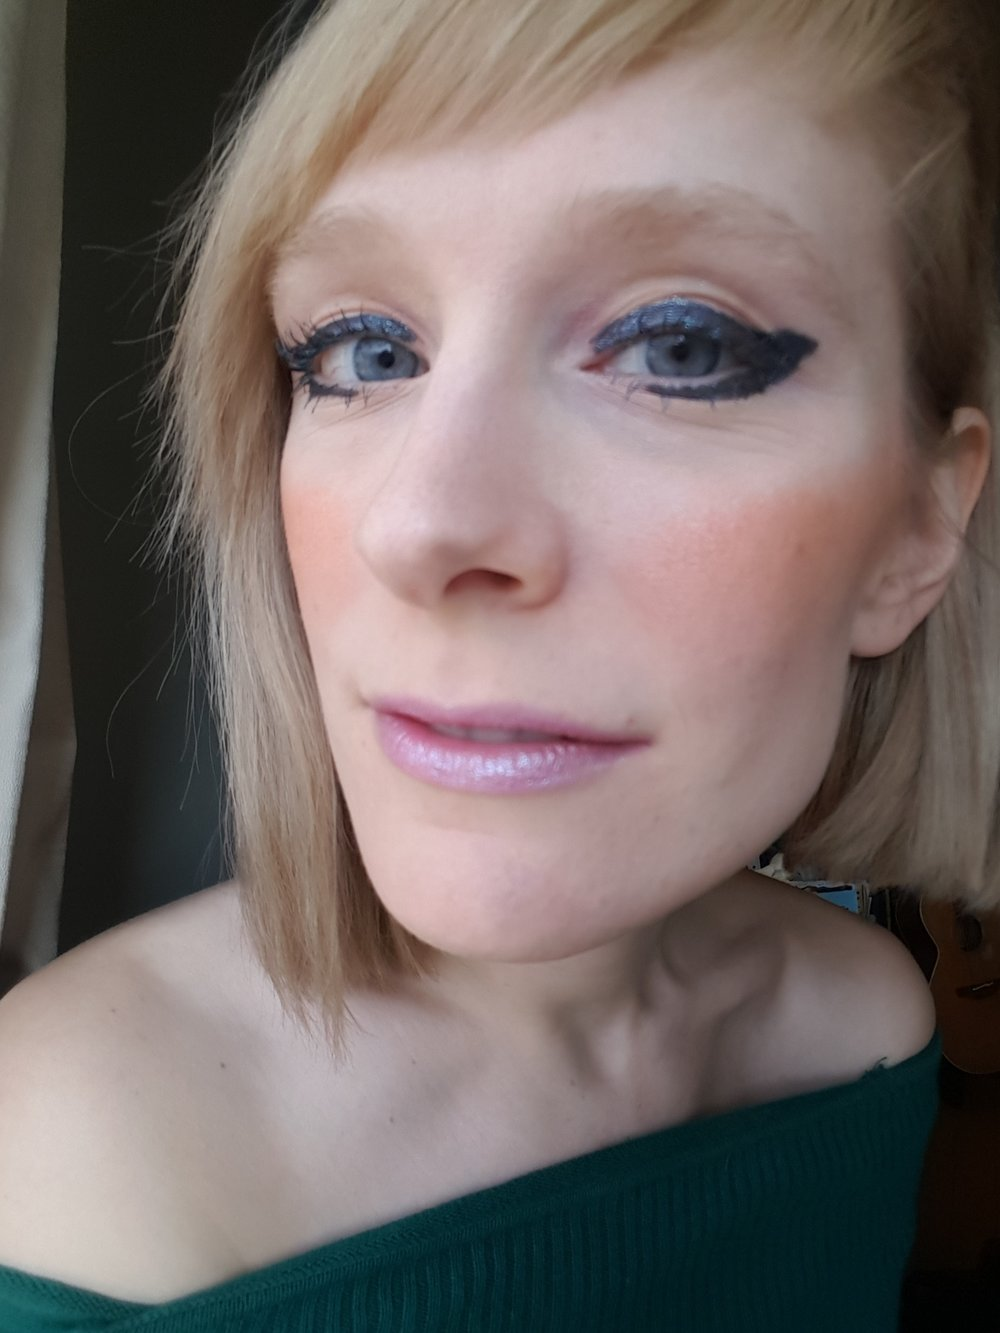 The final look, with all three steps combined from my tutorial. Let me know how it turns out for you! XO